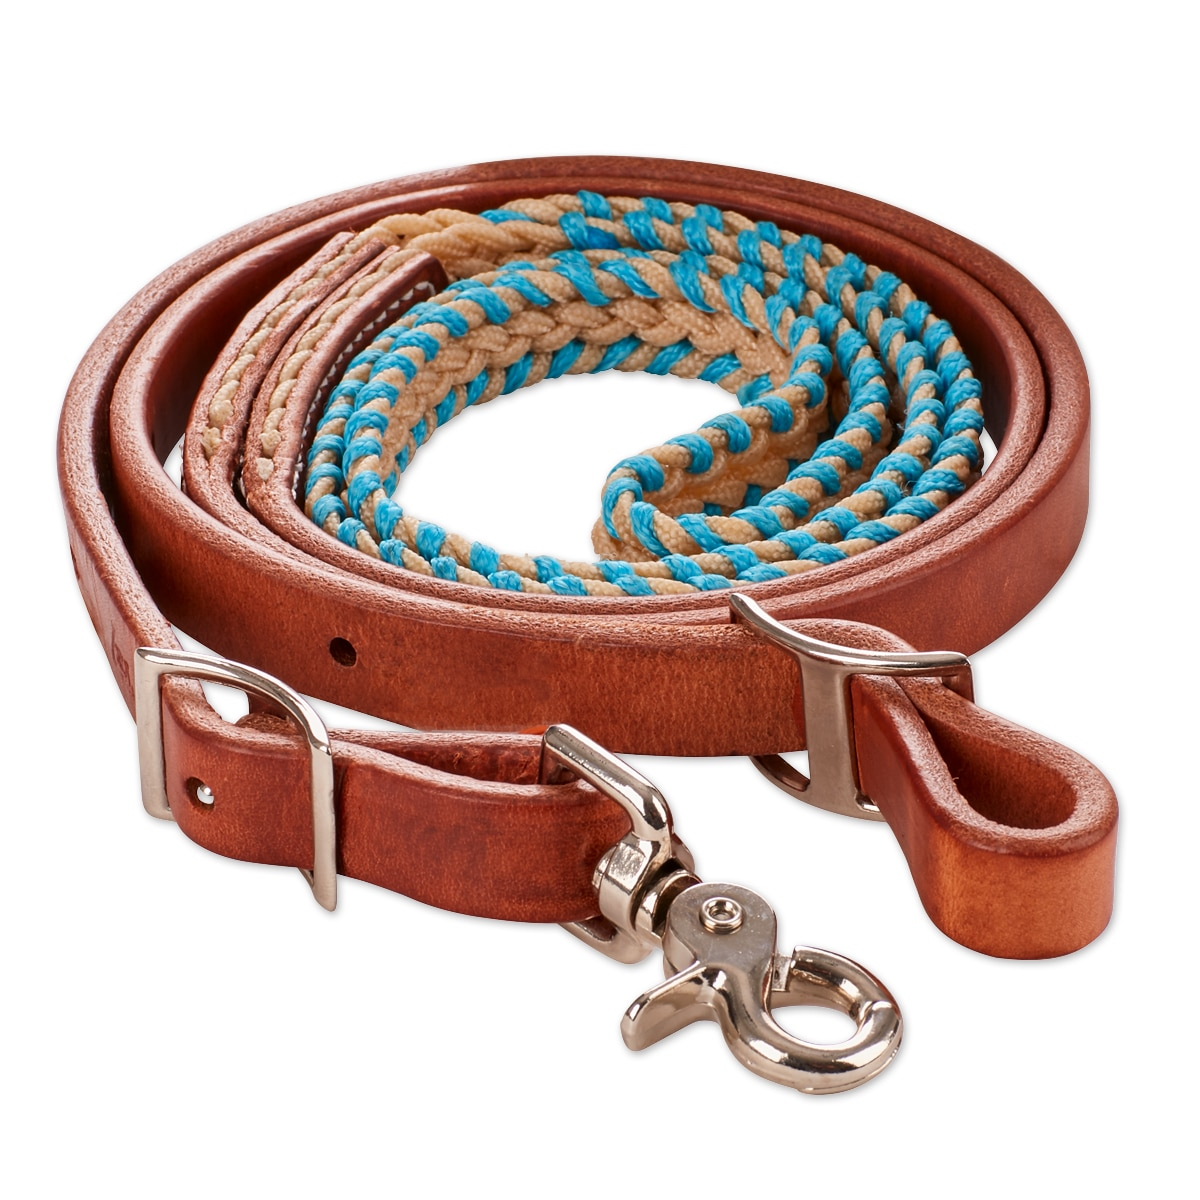 Tory Leather Waxed/Laced Barrel Reins